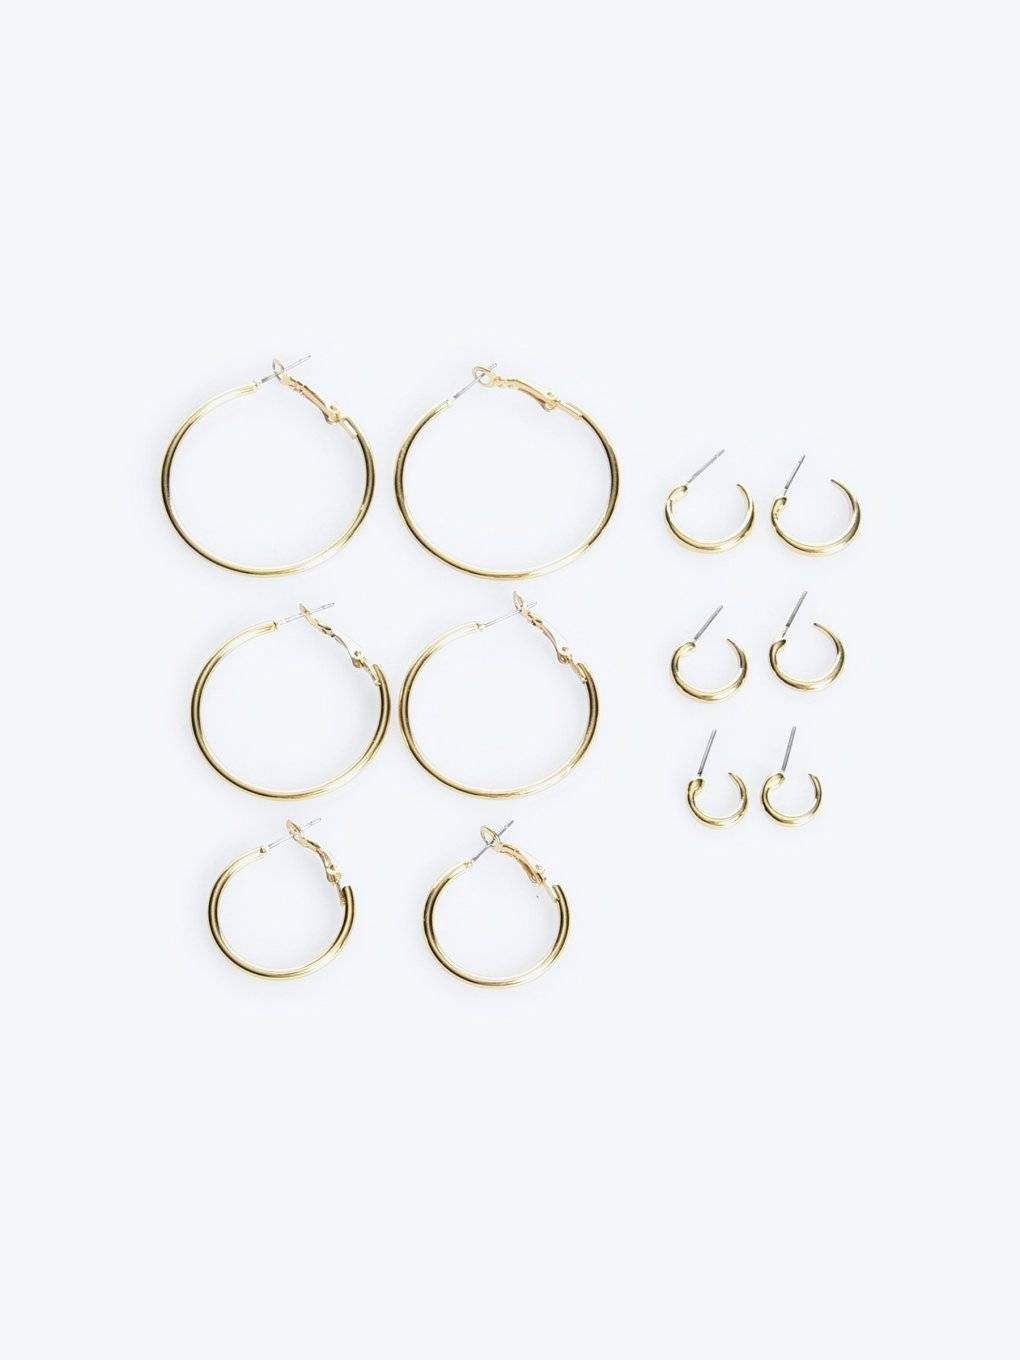 6-pack earrings set